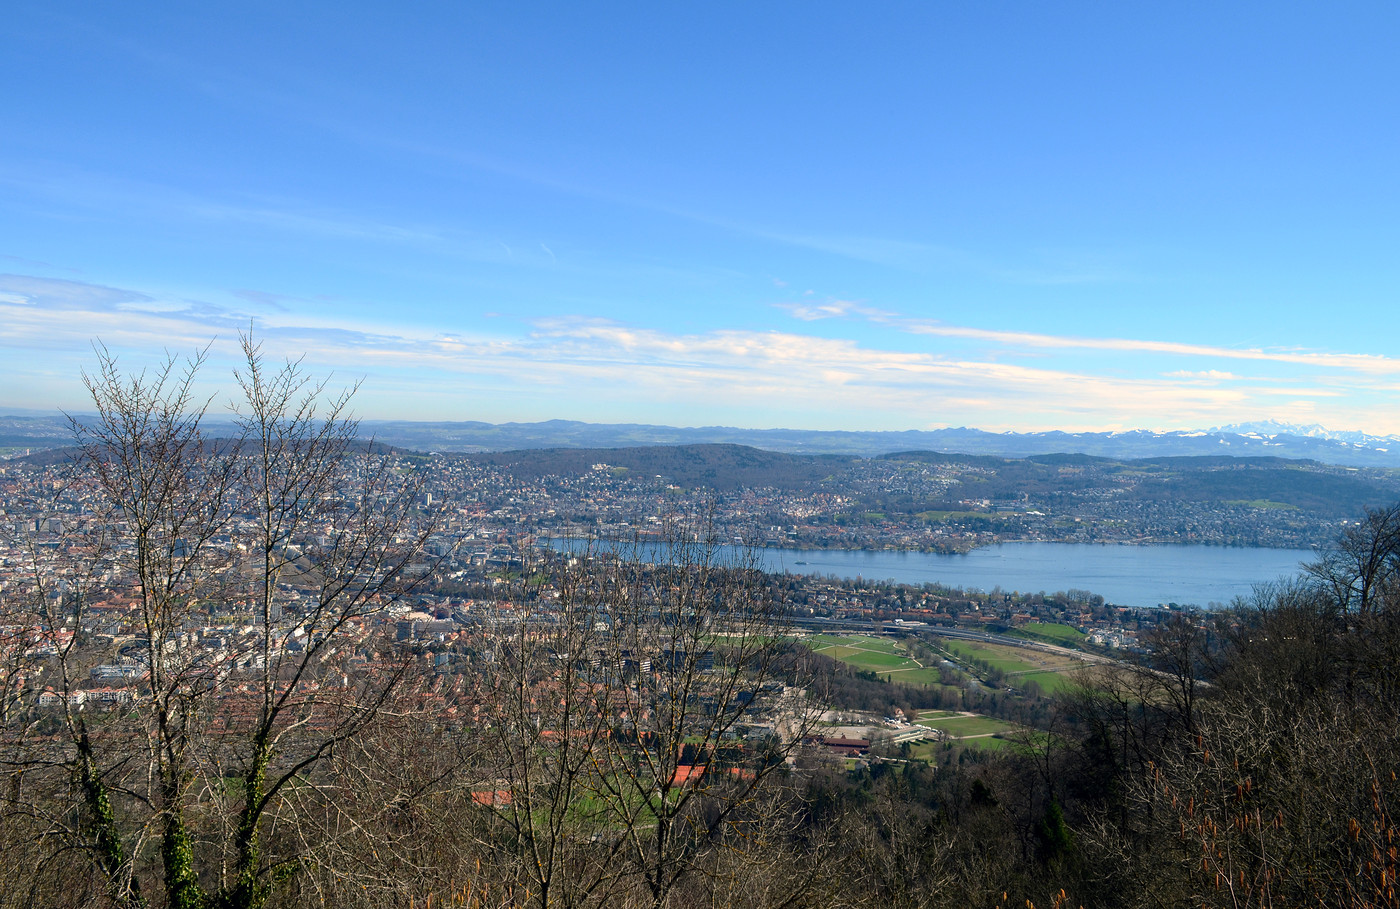 Uetliberg mountain